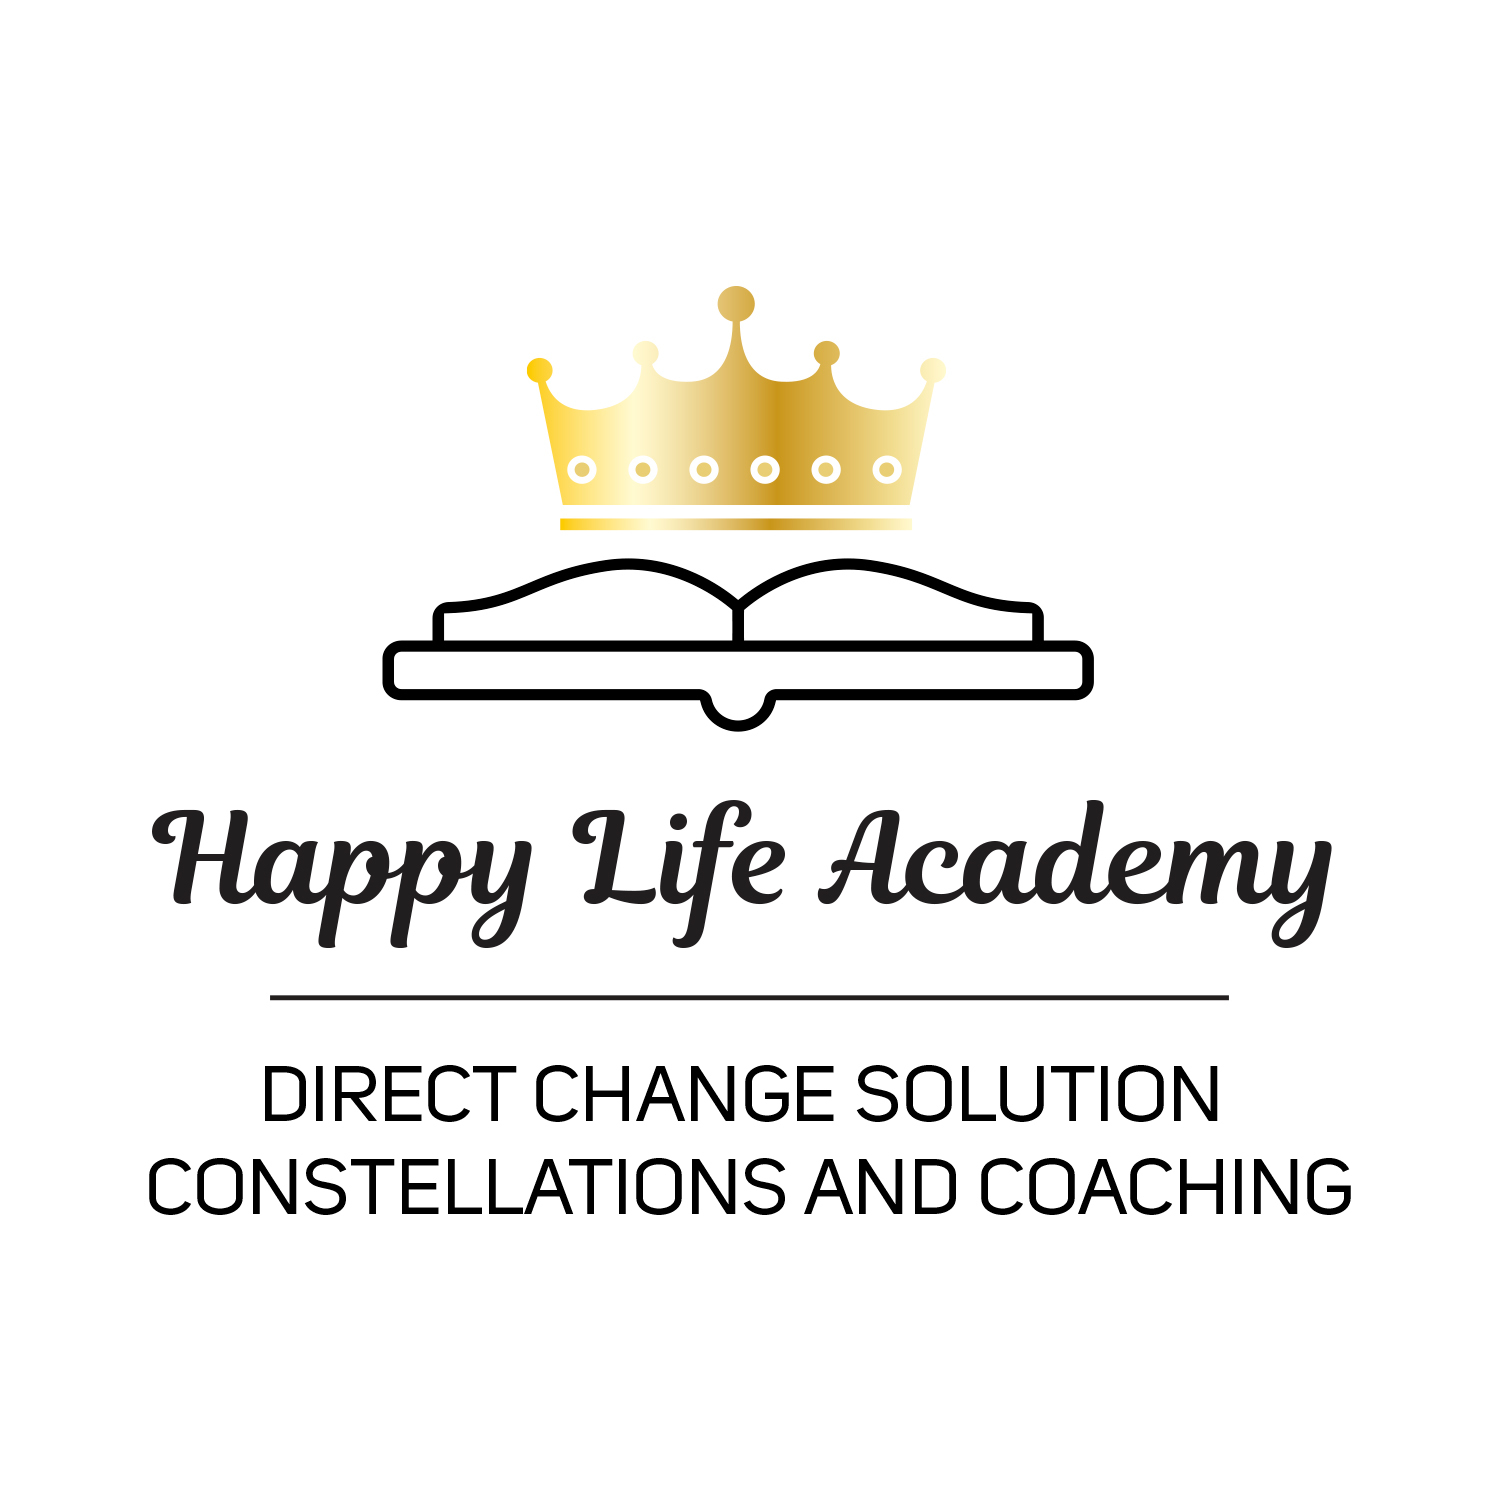 Bildmarke: HAPPY LIFE ACADEMY; DIRECT CHANGE SOLUTION CONSTELLATIONS AND COACHING